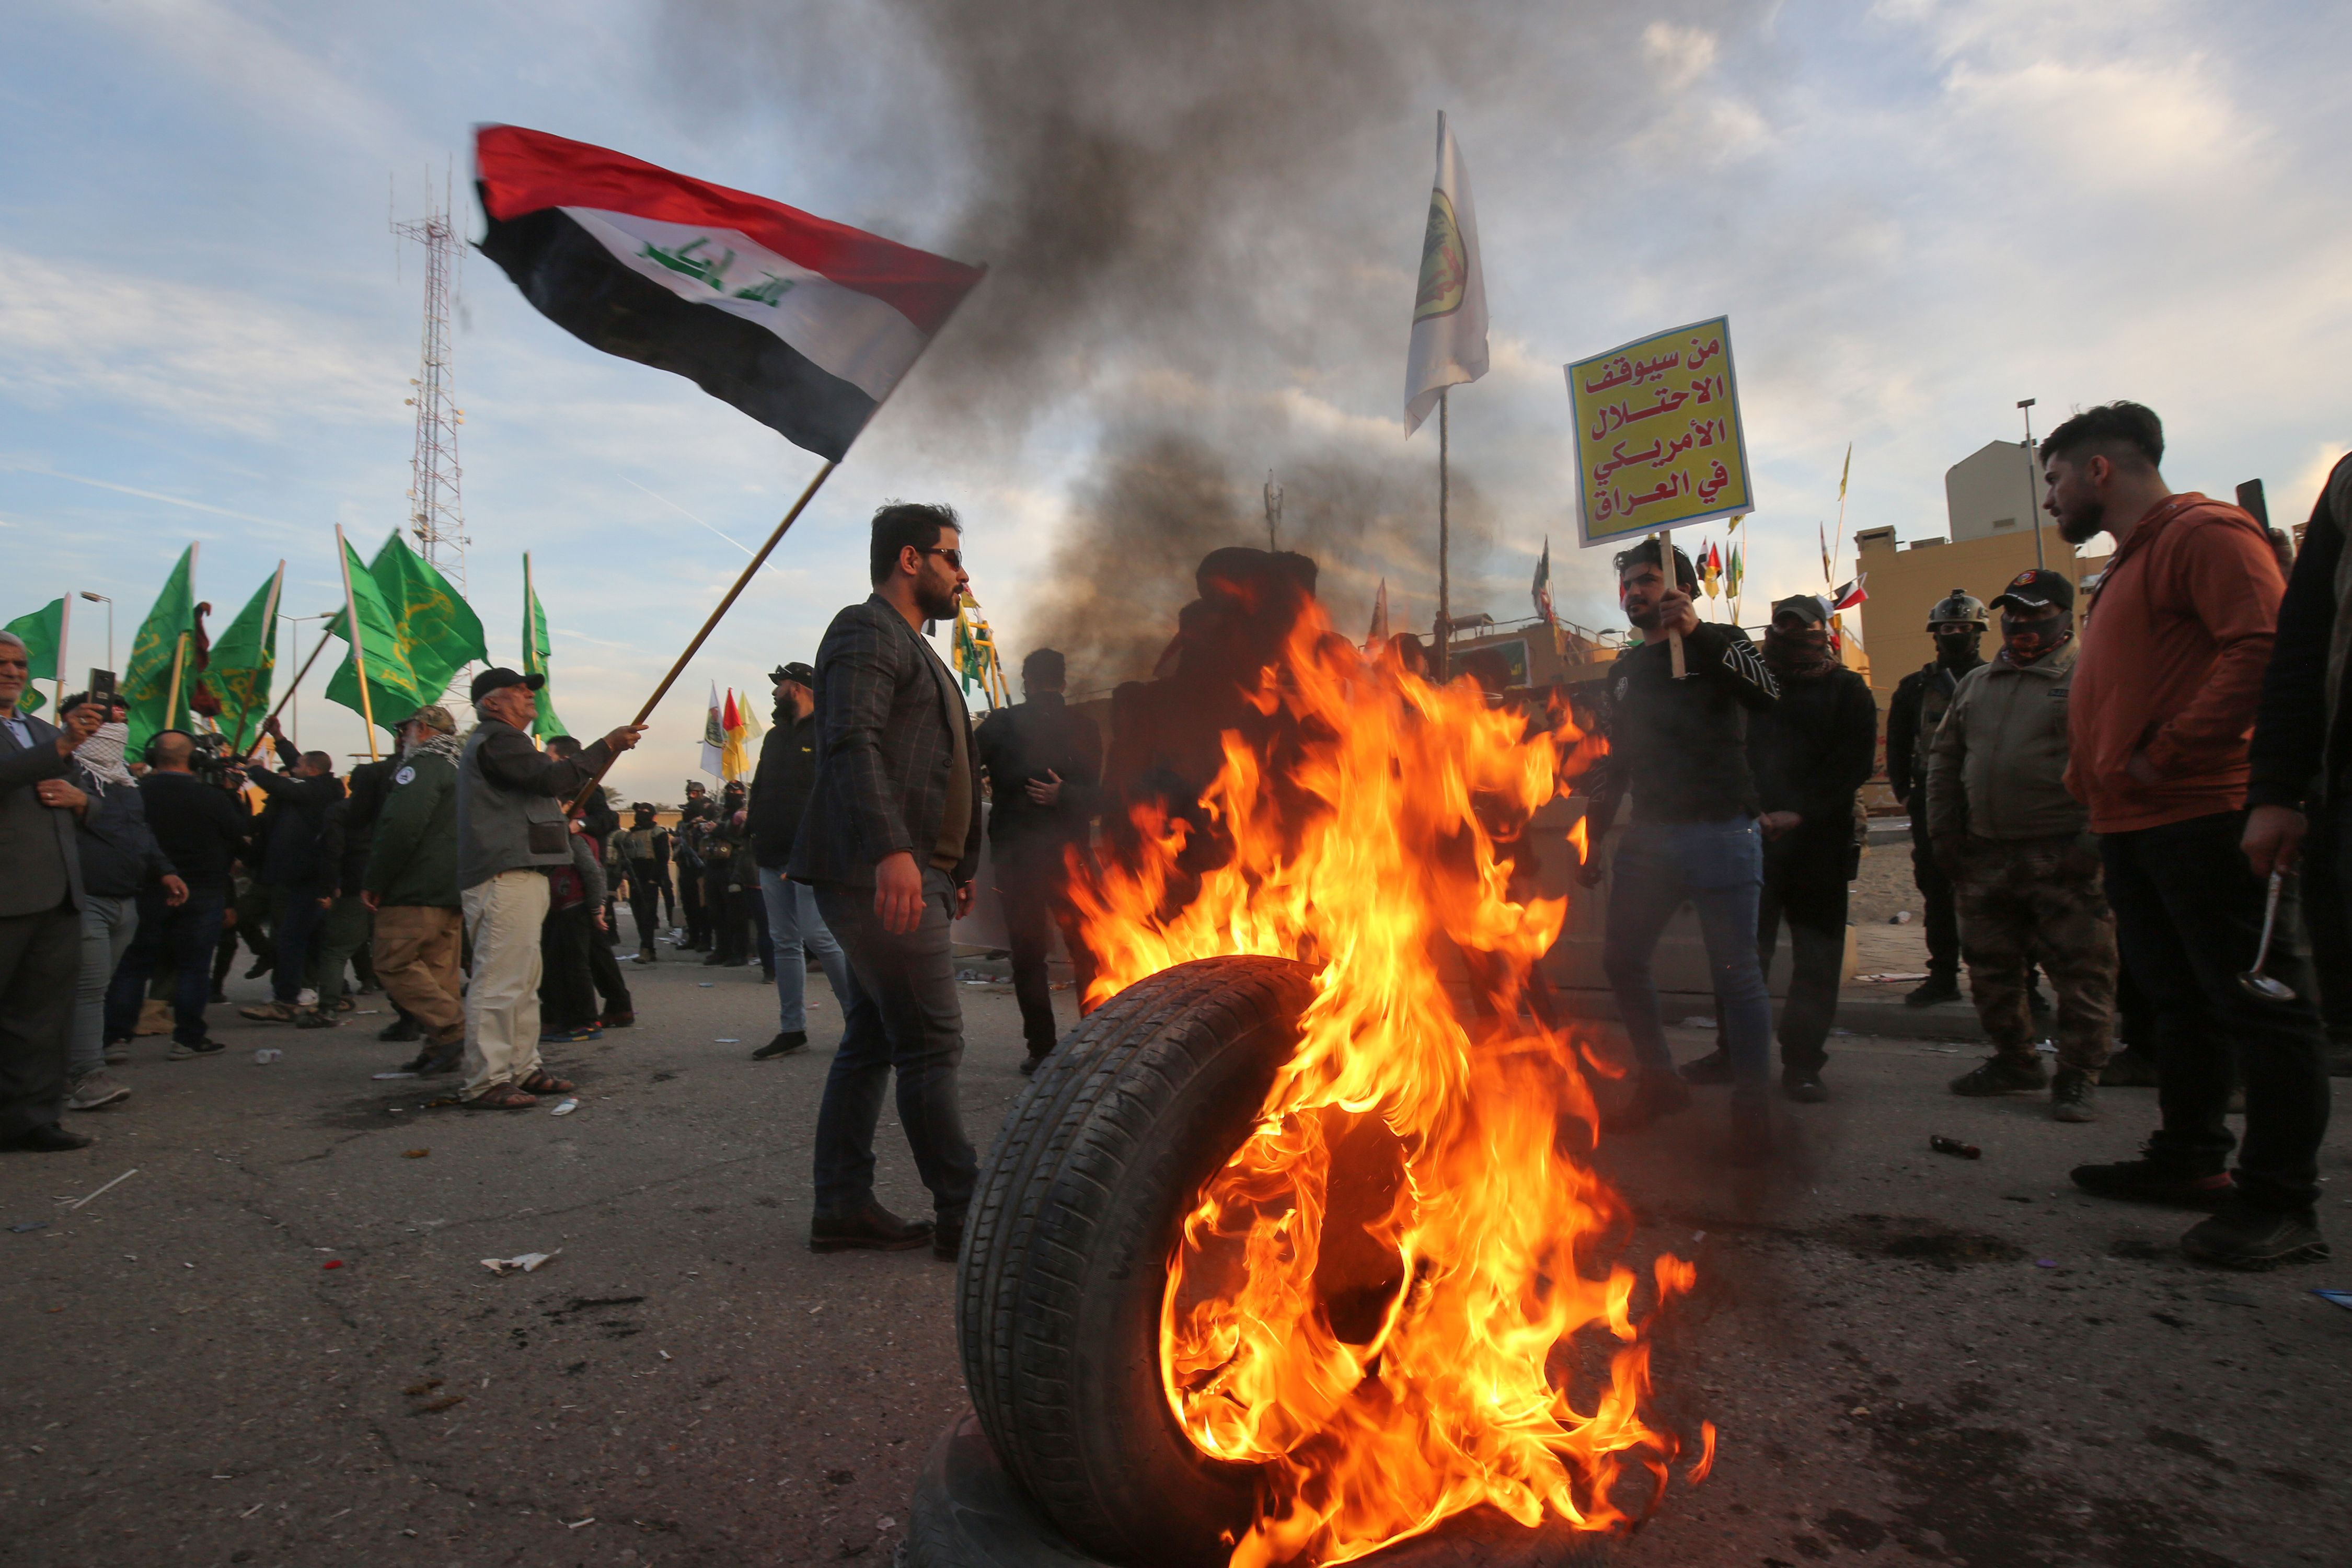 Supporters of Iraq's Hashed al-Shaabi paramilitary force protest outside the US embassy in the Iraqi capital Baghdad on January 1, 2020 to condemn the US air strikes that killed 25 Hashed fighters over the weekend. (AHMAD AL-RUBAYE/AFP via Getty Images)